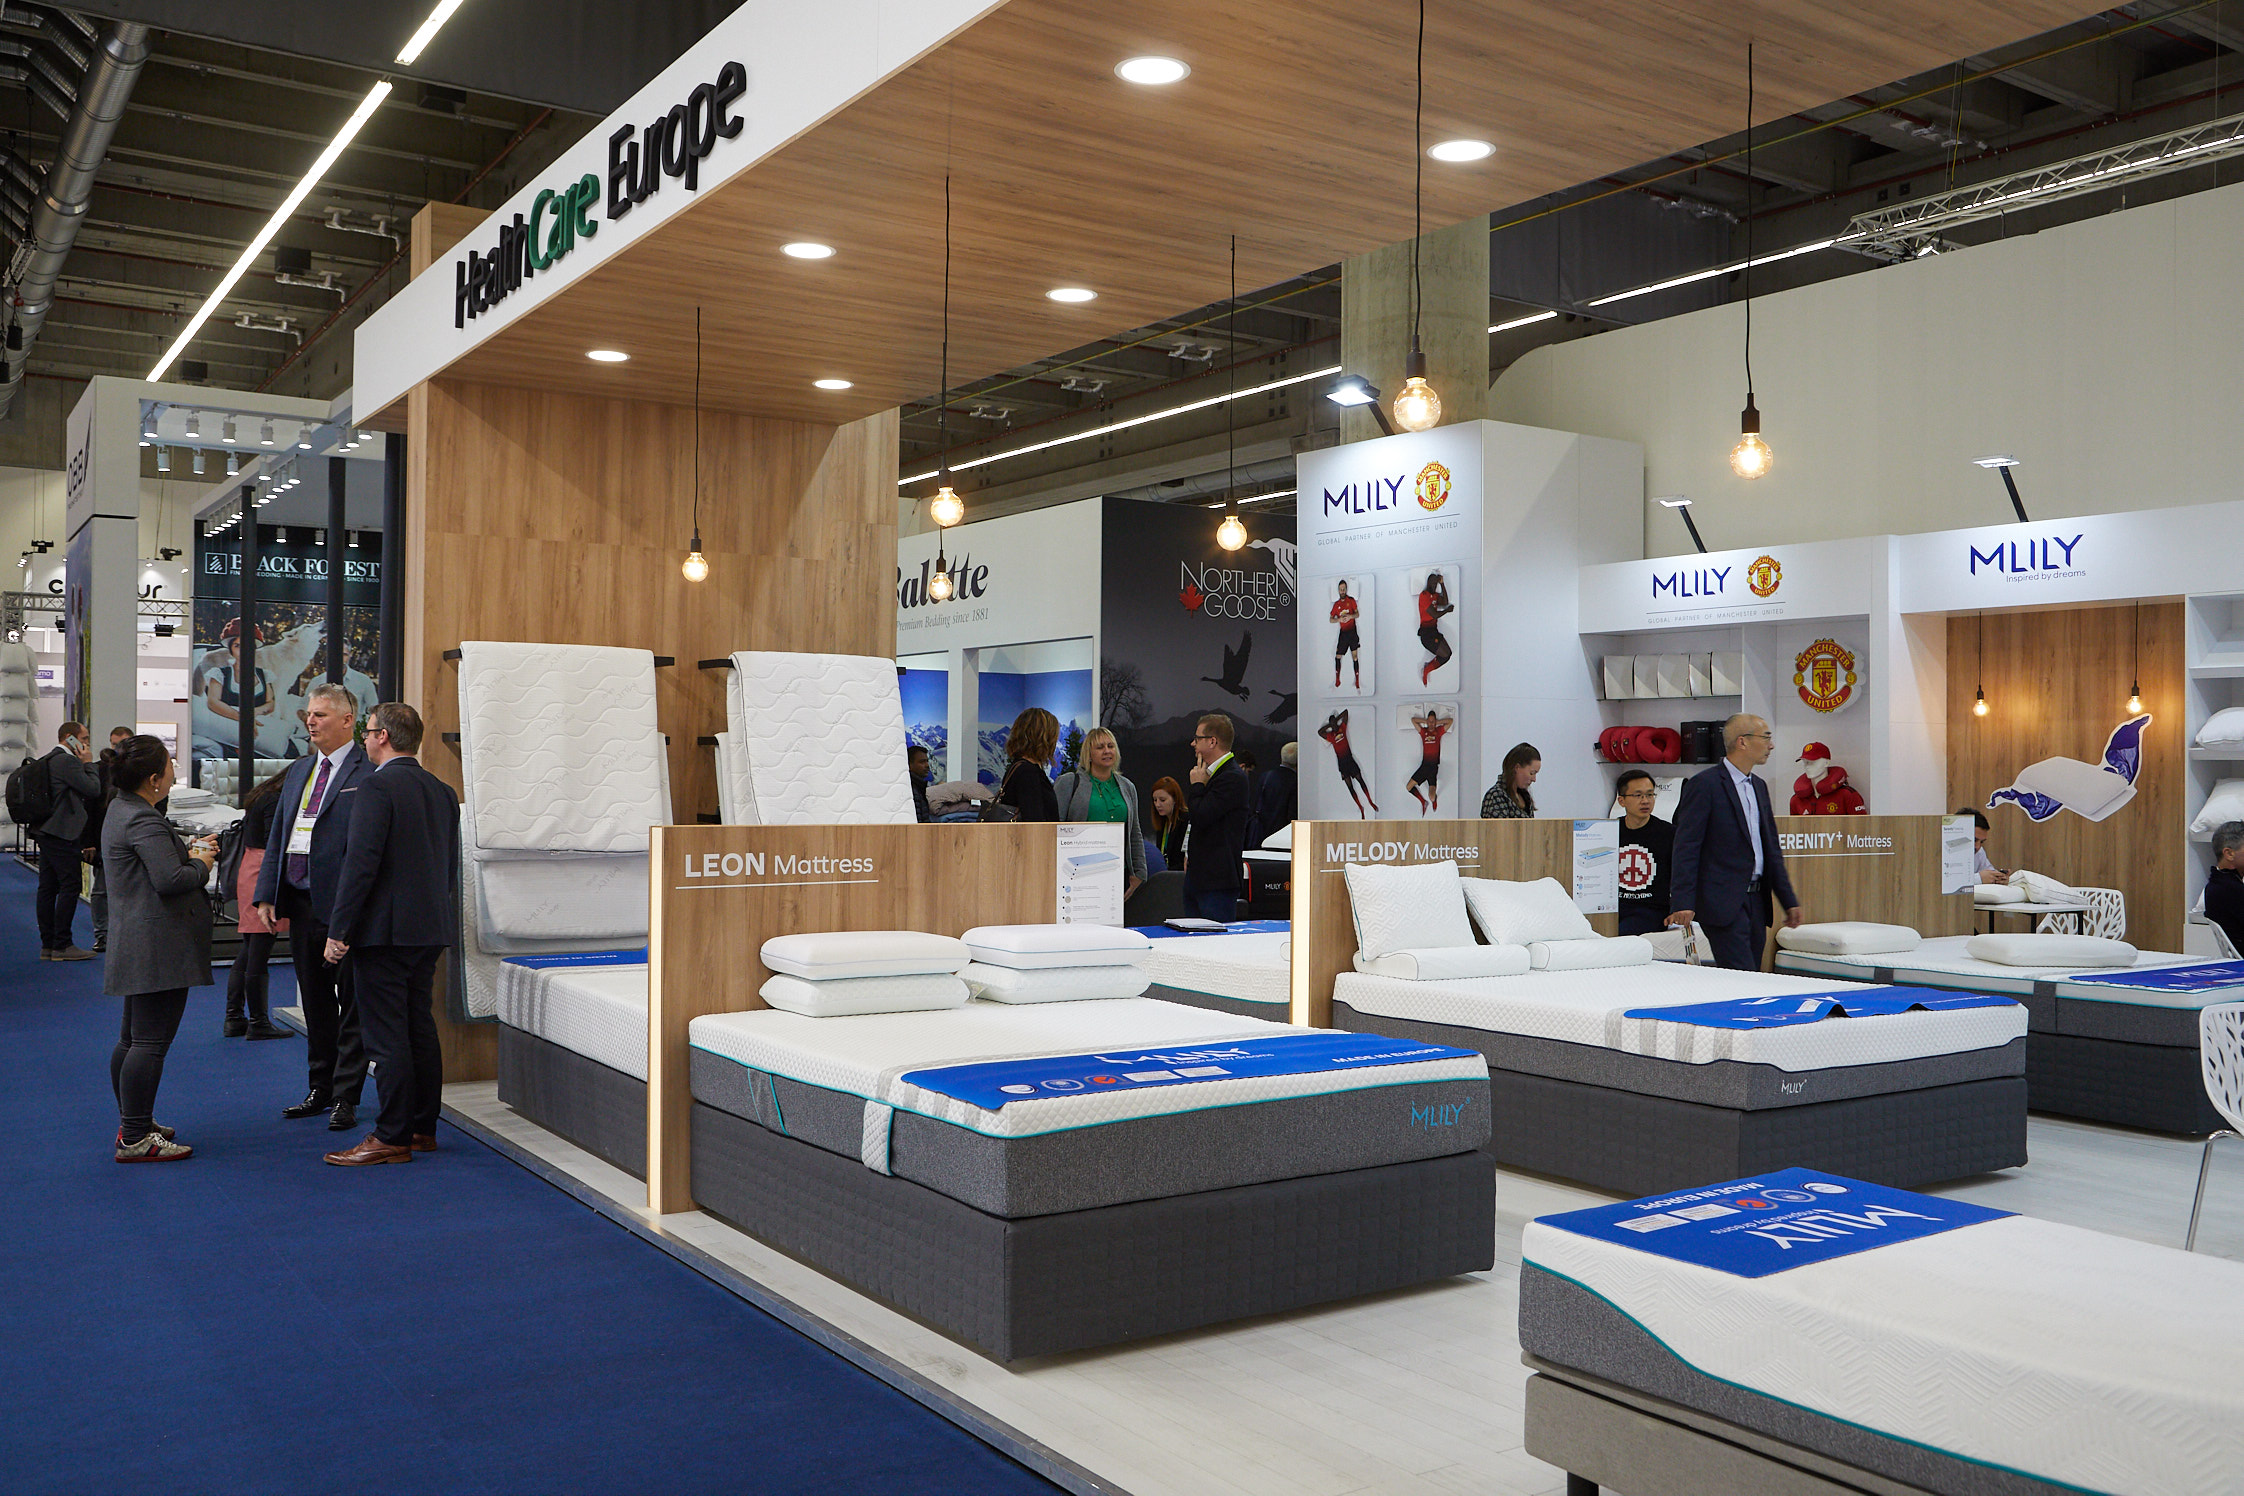 Smart Bedding (HealthCare Europe d.o.o.)